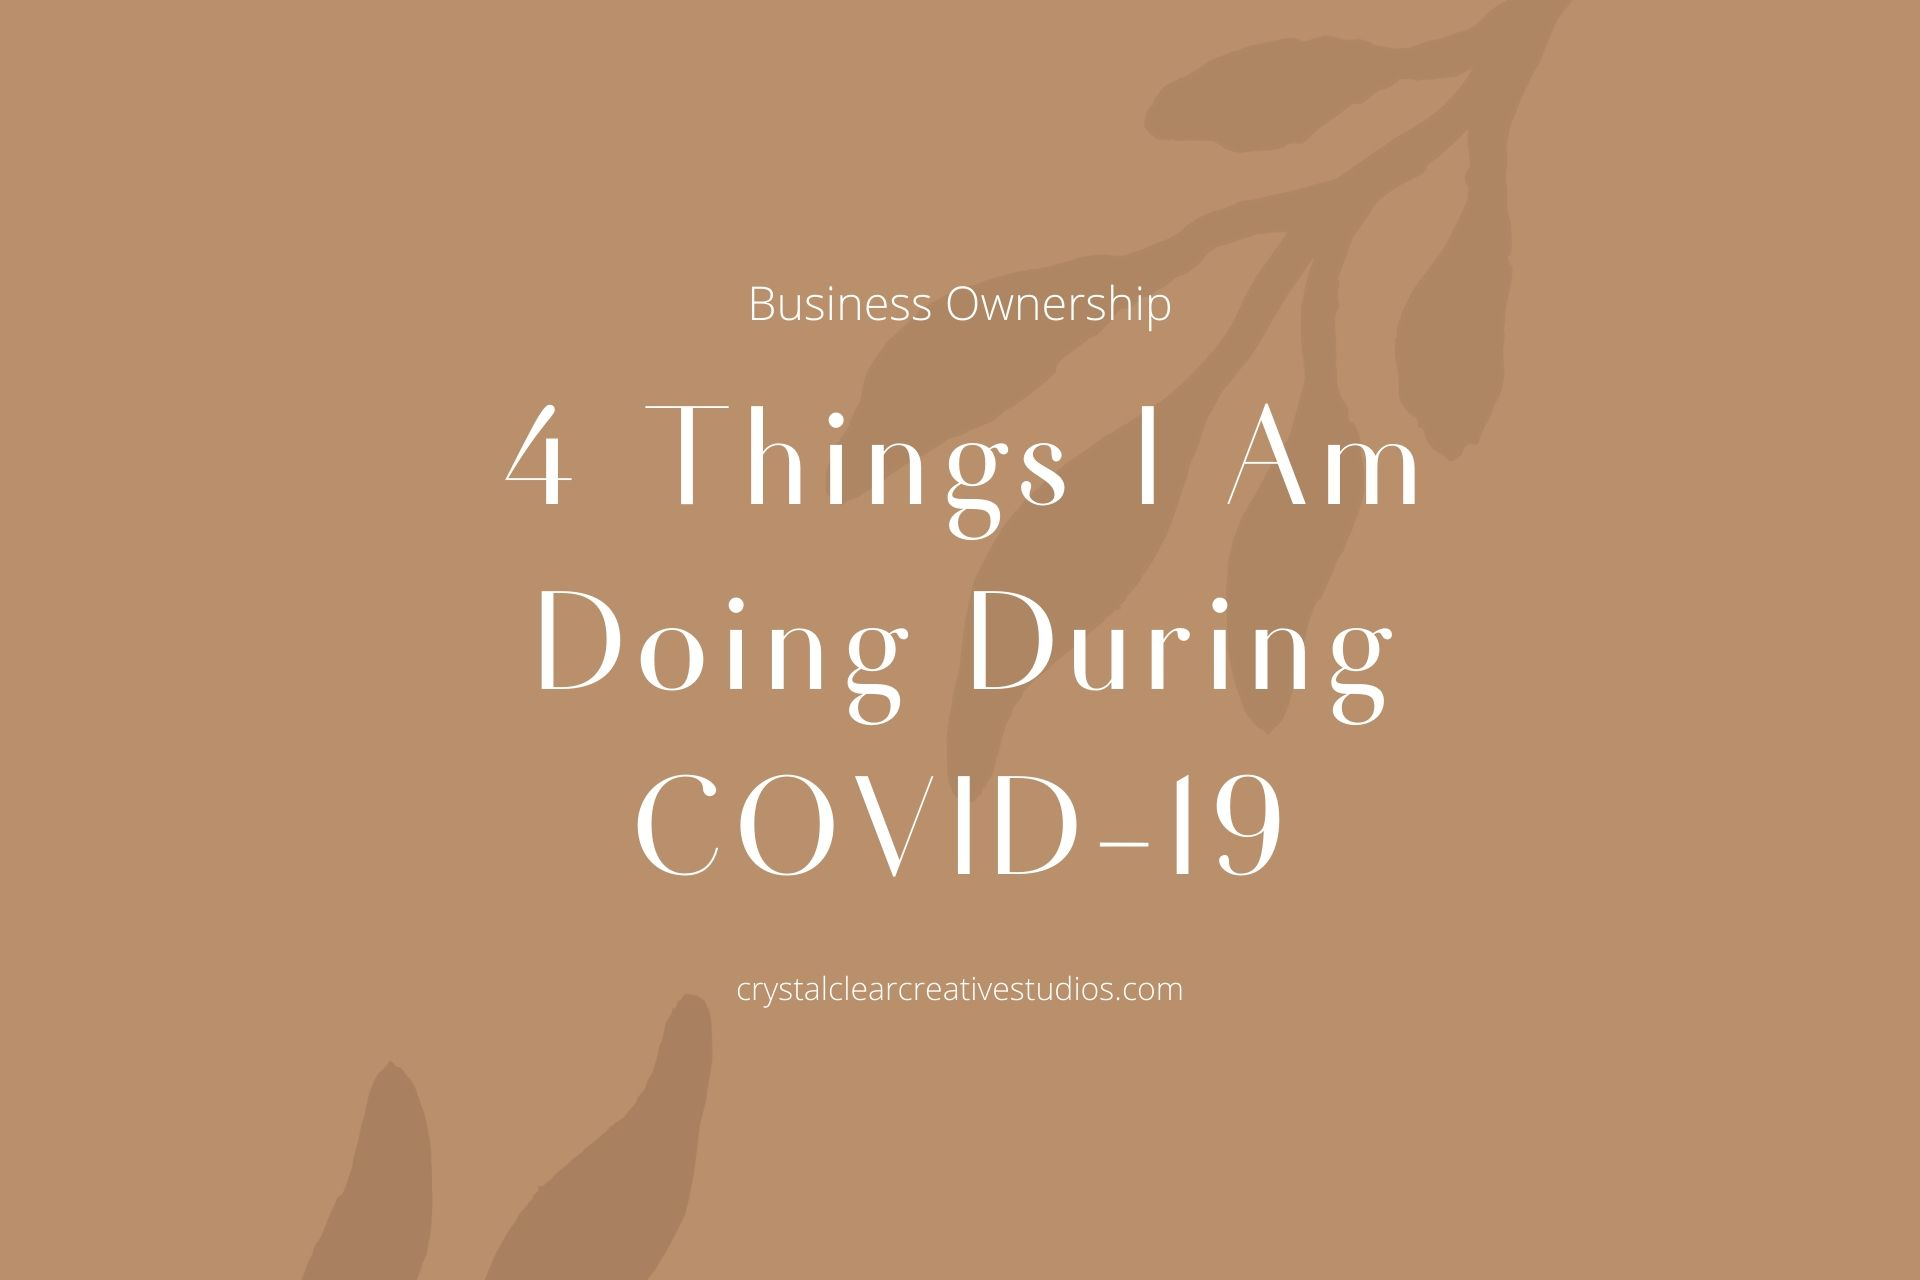 4 Things I Am Doing During COVID-19